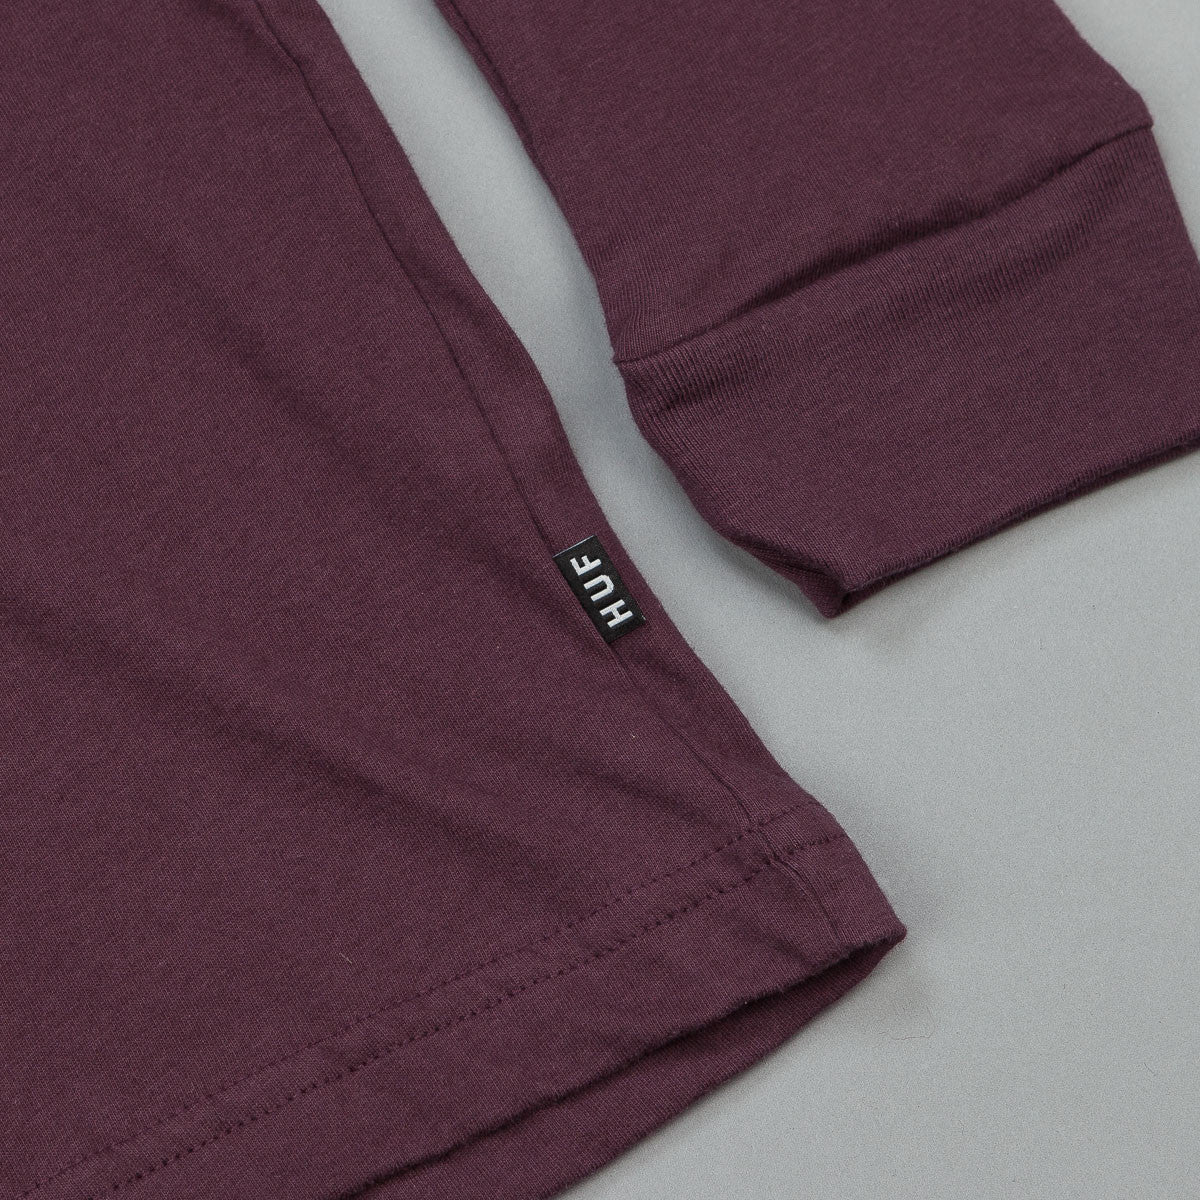 HUF X Slap Butterfly Long Sleeve T-Shirt - Wine